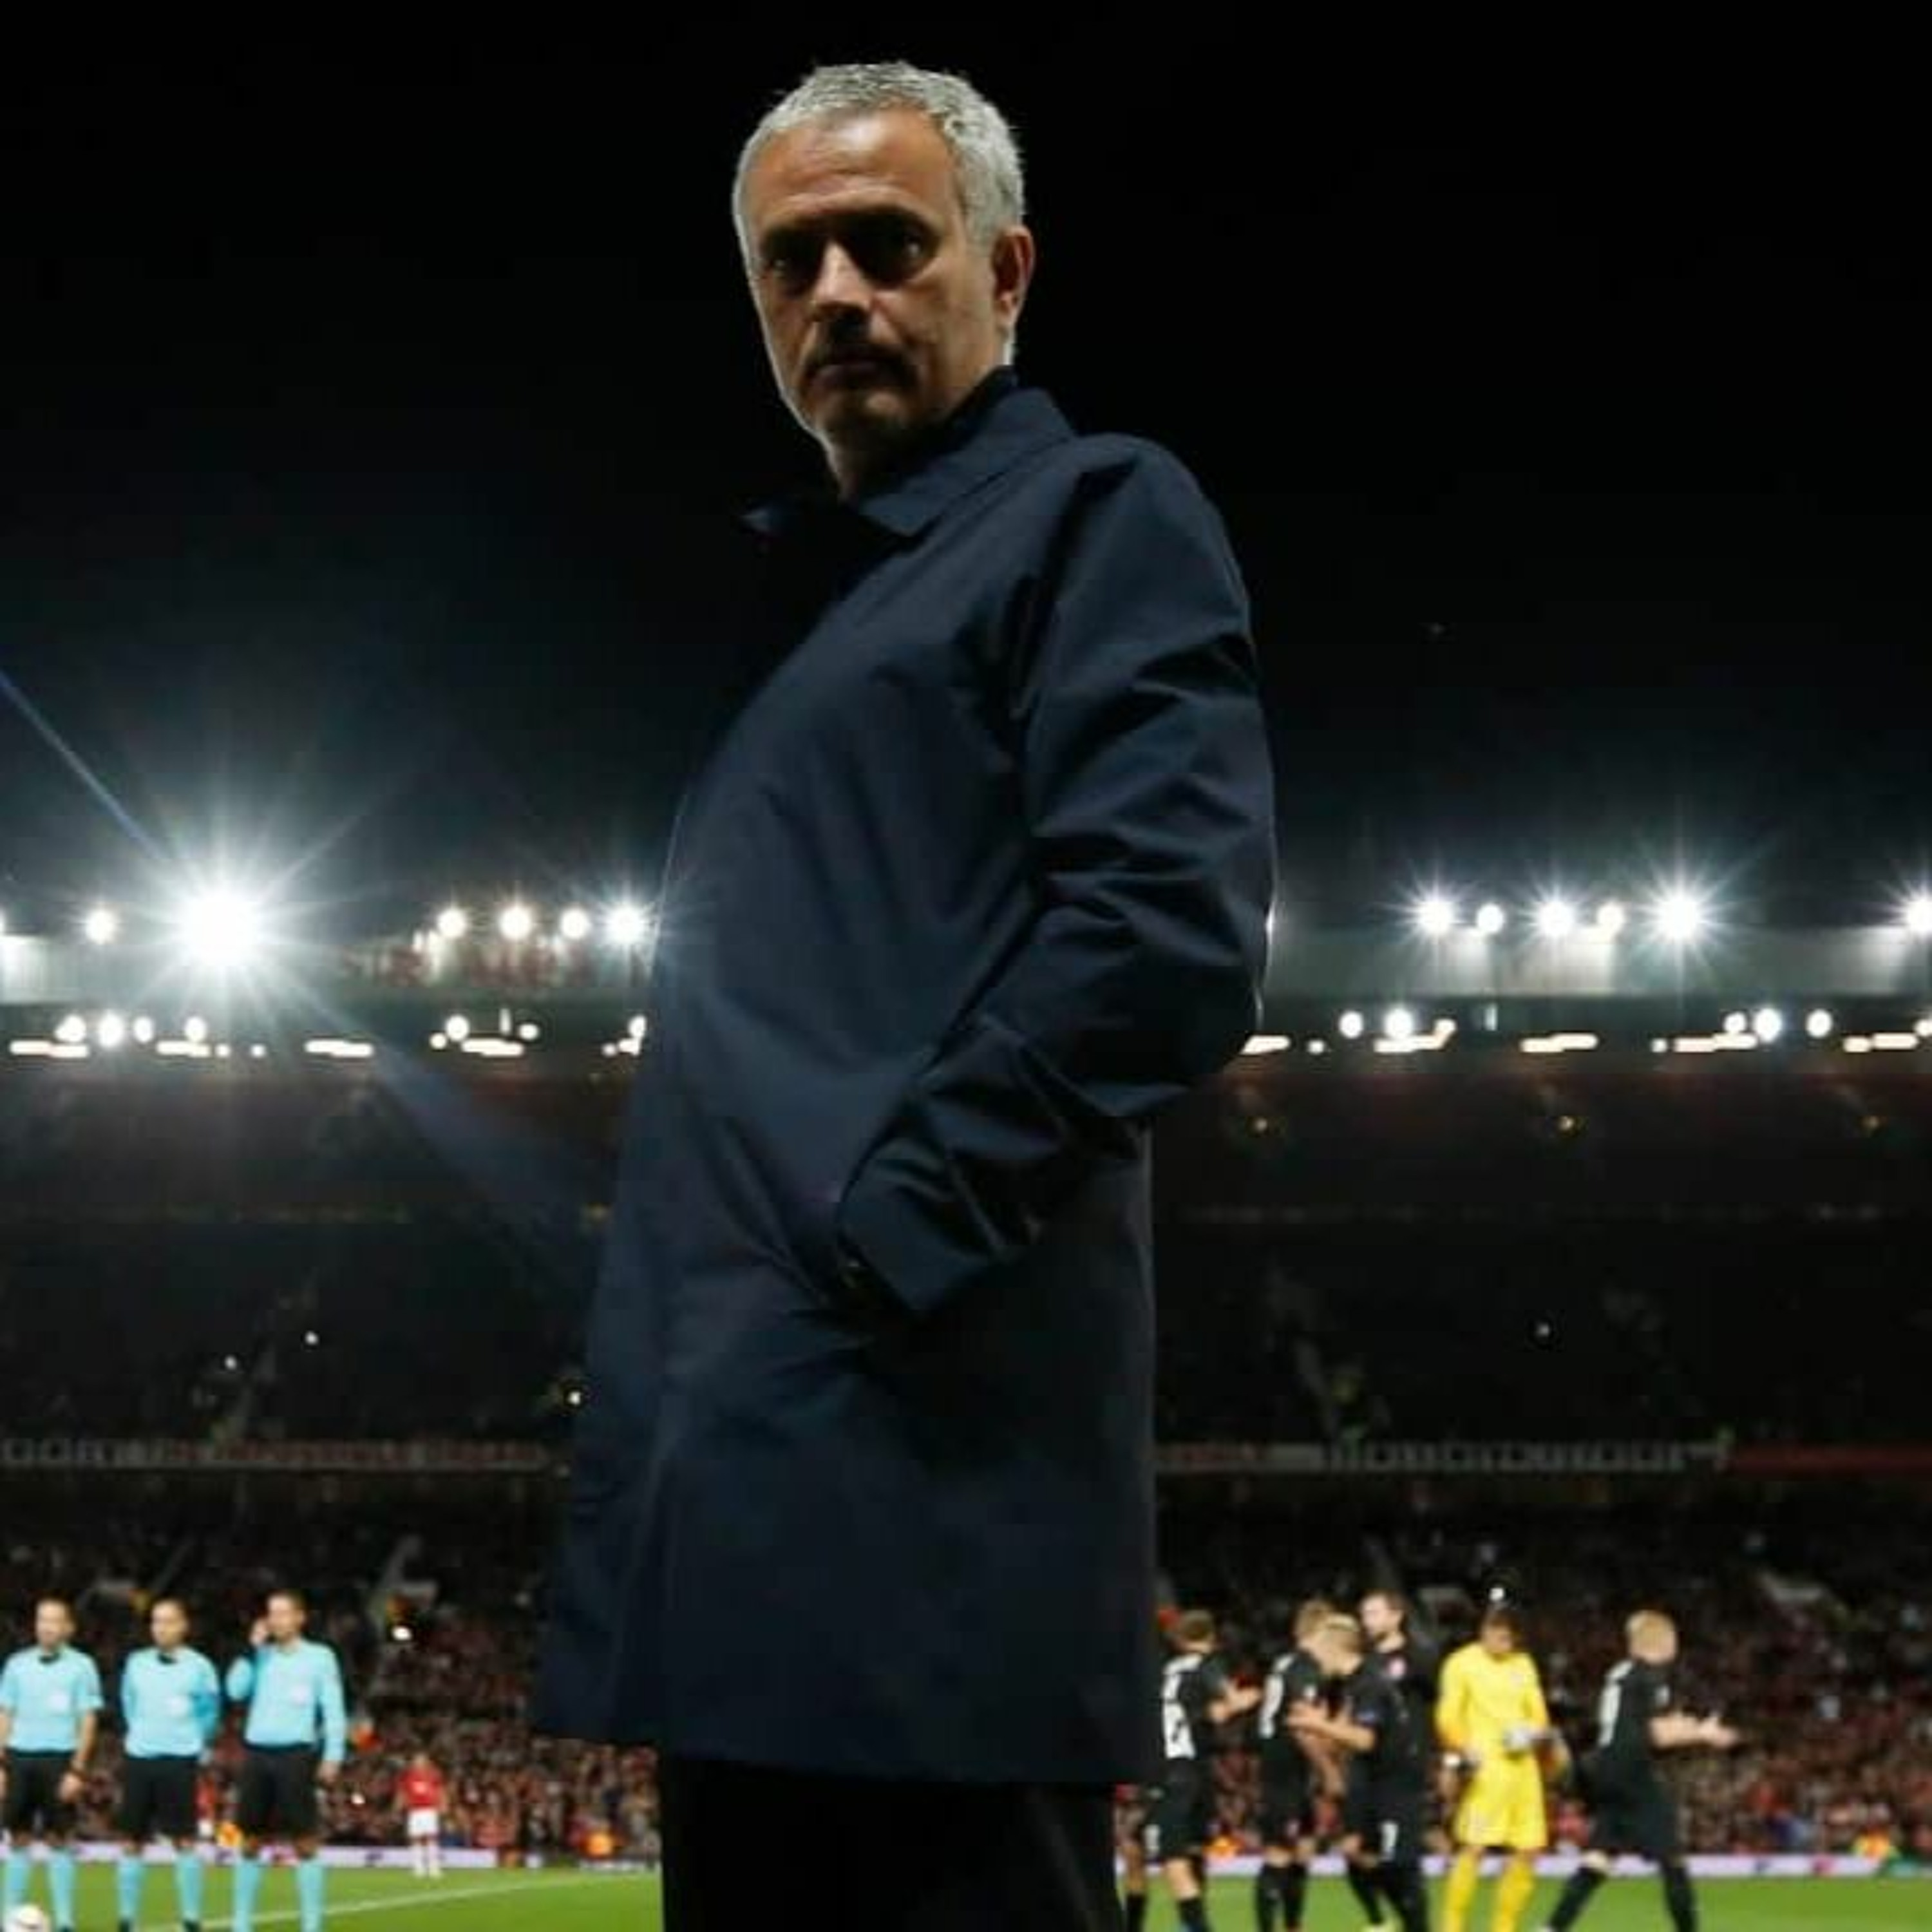 Episode 17: Jose Mourinho And his Red Devils